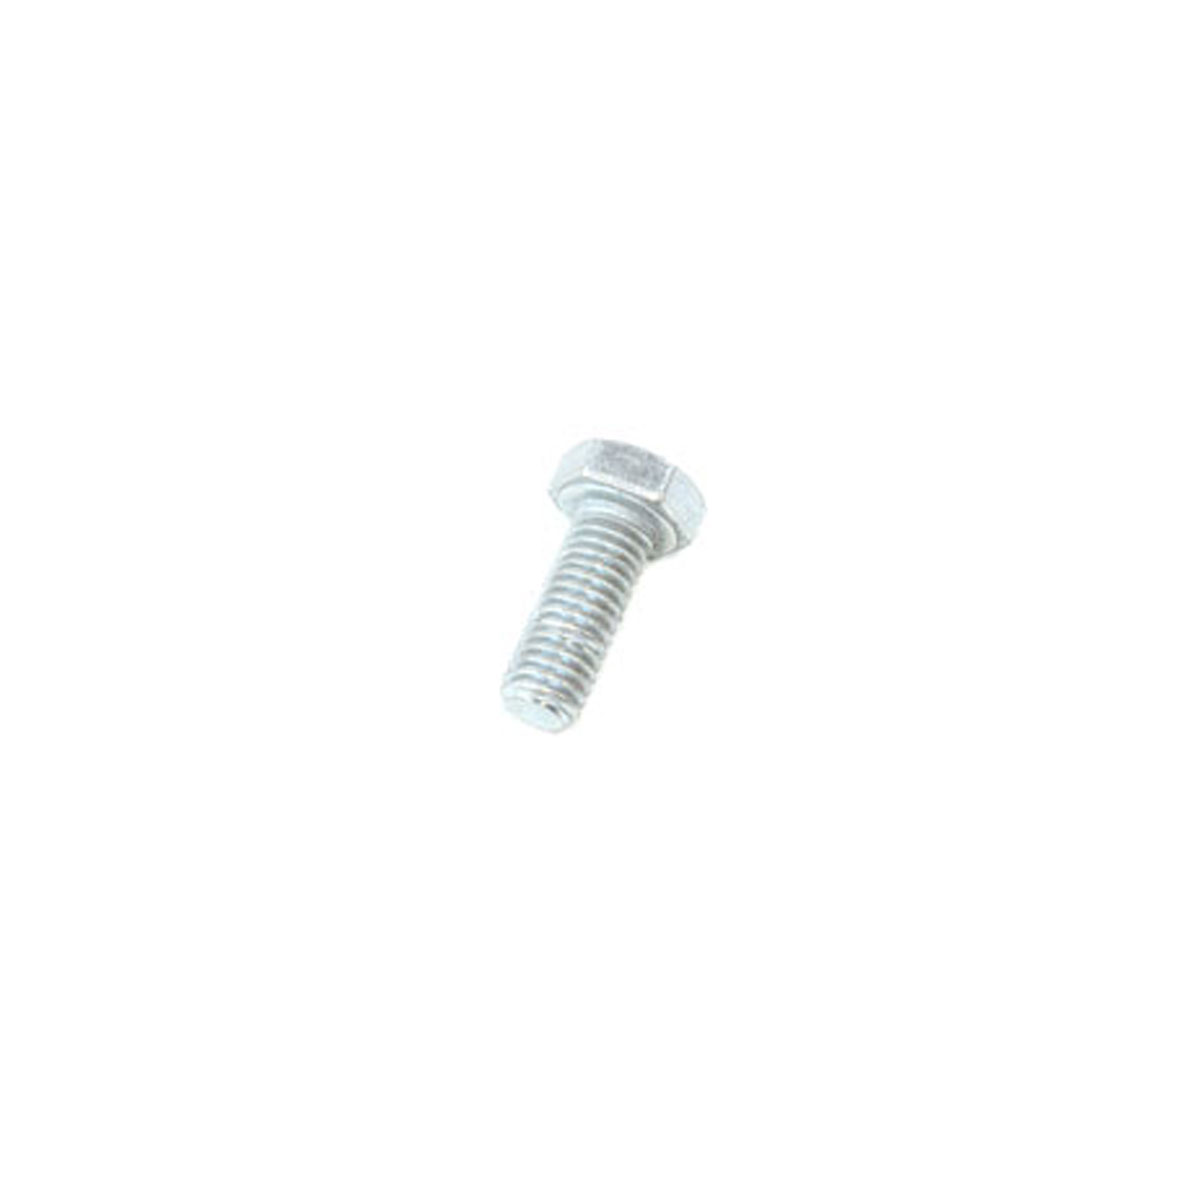 Husqvarna Screw 8X20 725245151